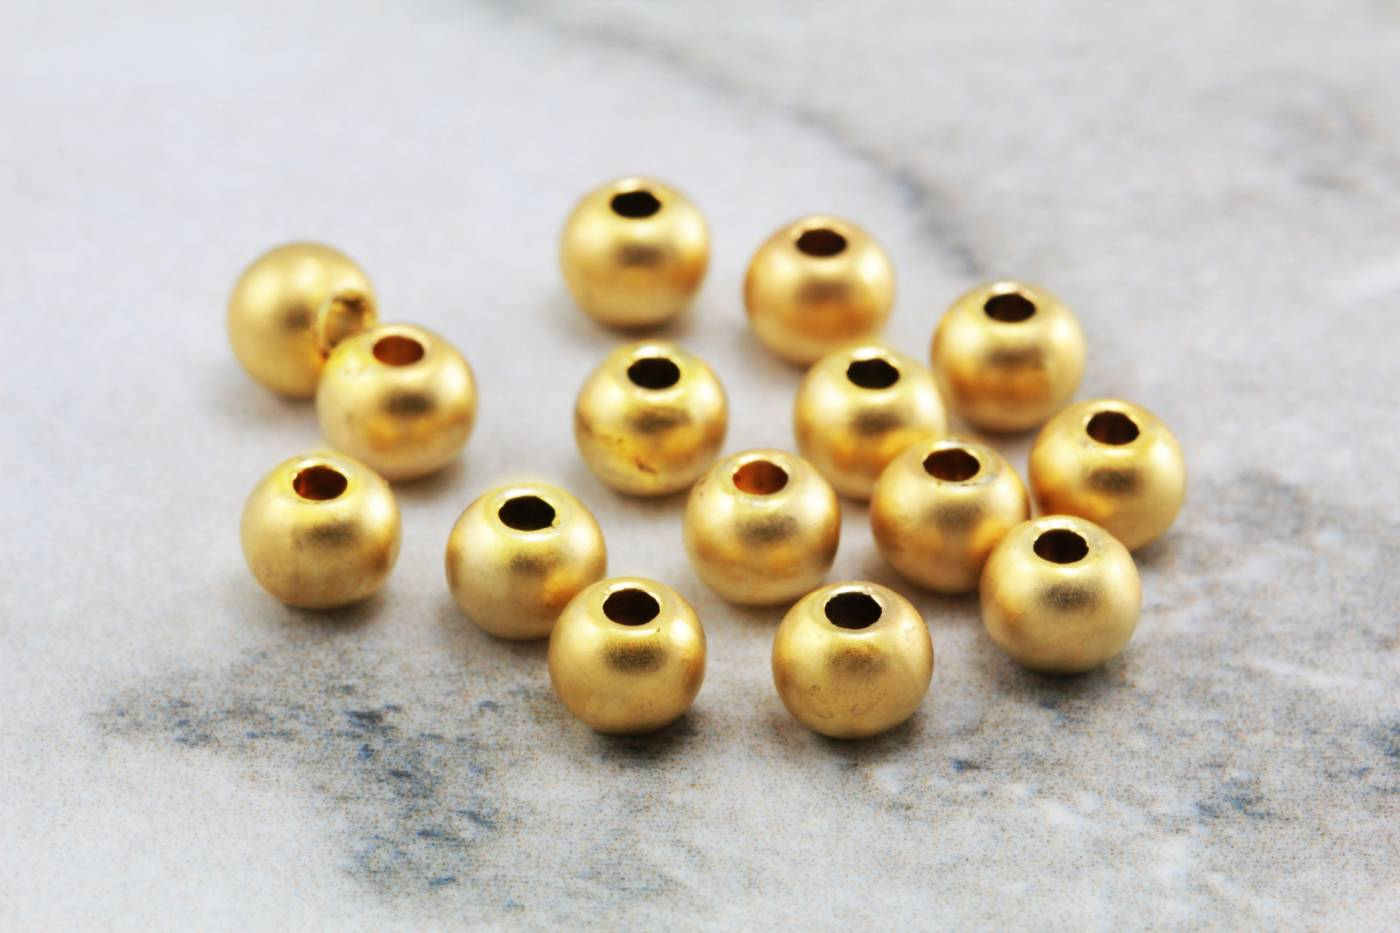 gold-plated-ball-5mm-spacer-metal-beads.jpg